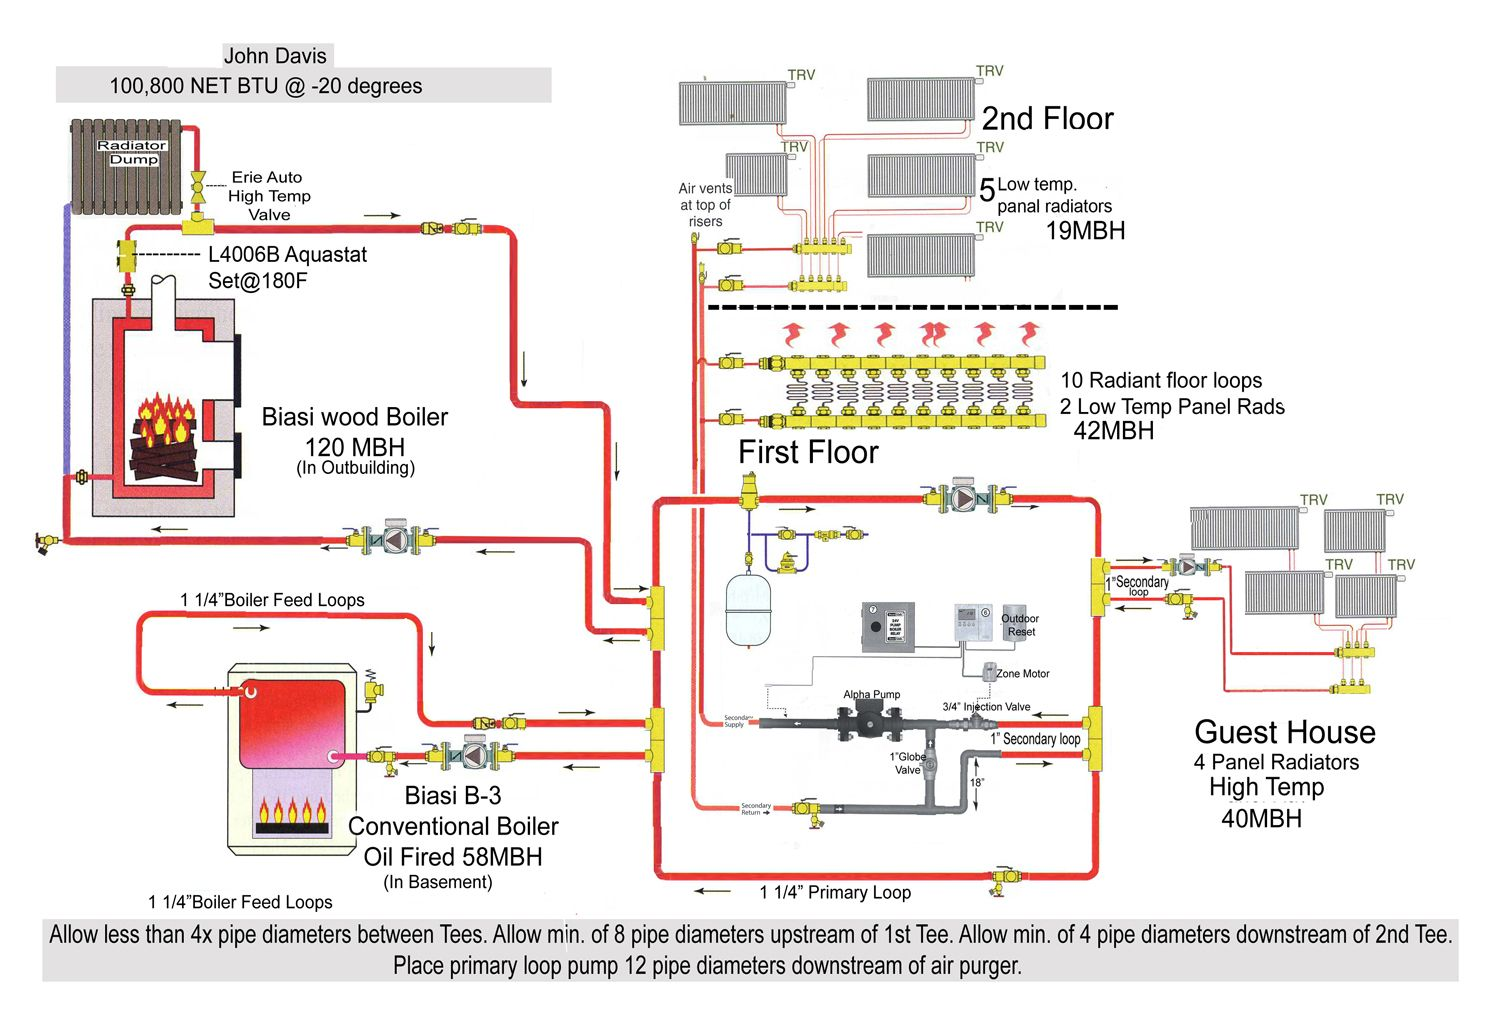 Heating System Diagrams Google Search Radiant Floor Heating Systems Residential Boilers